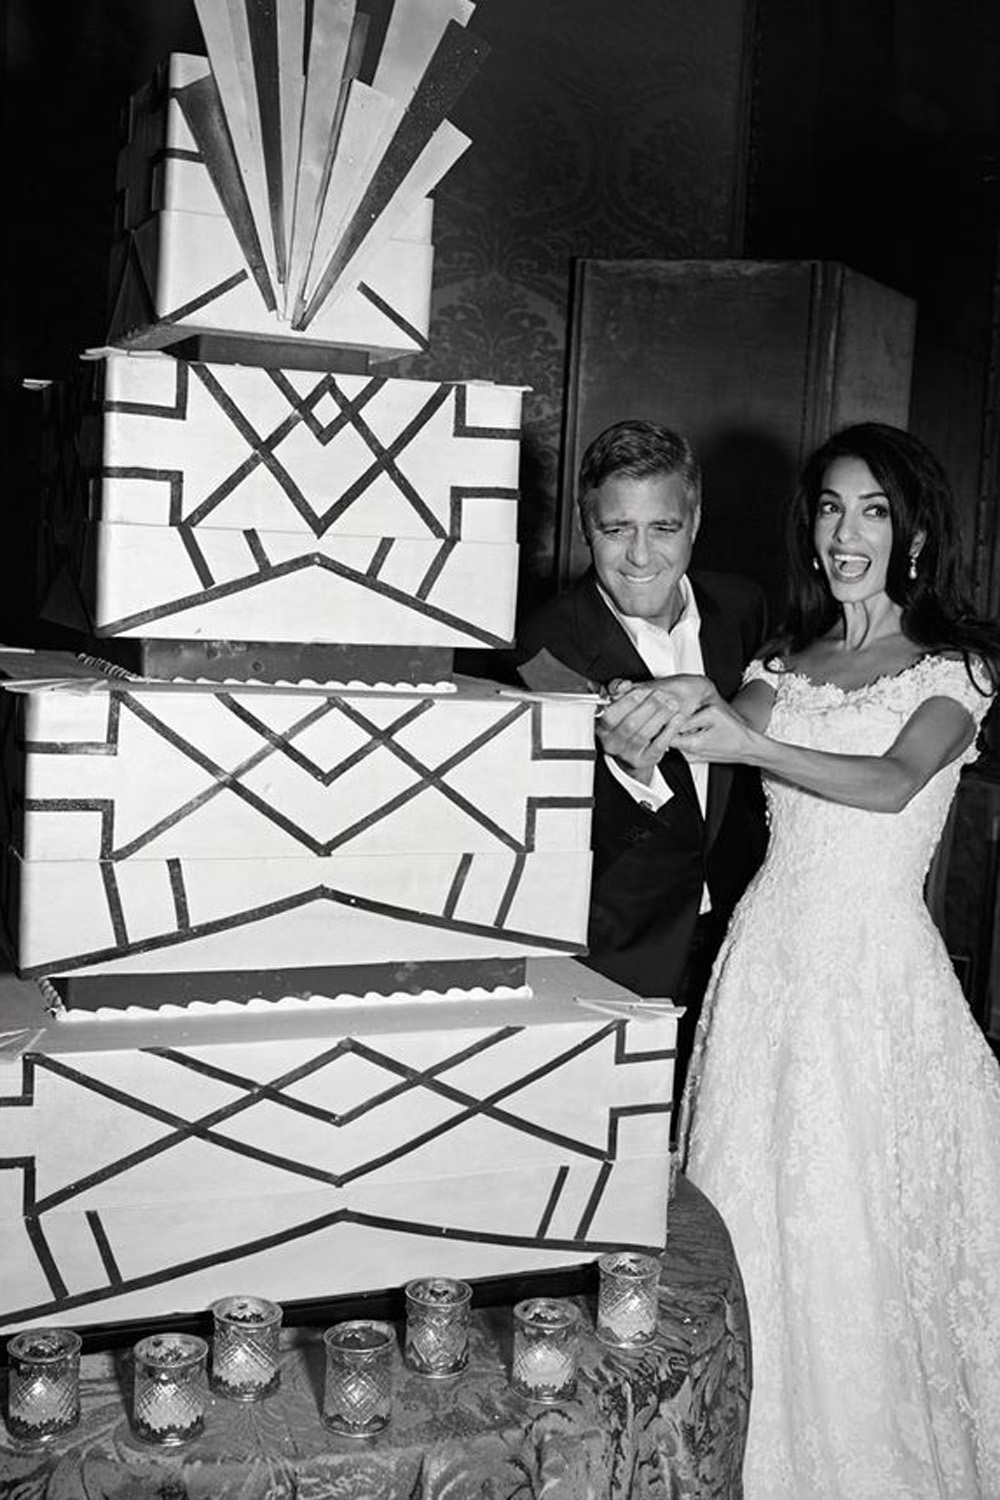 19 Celebrity Wedding Cake Pictures To Inspire Your Own Big Day